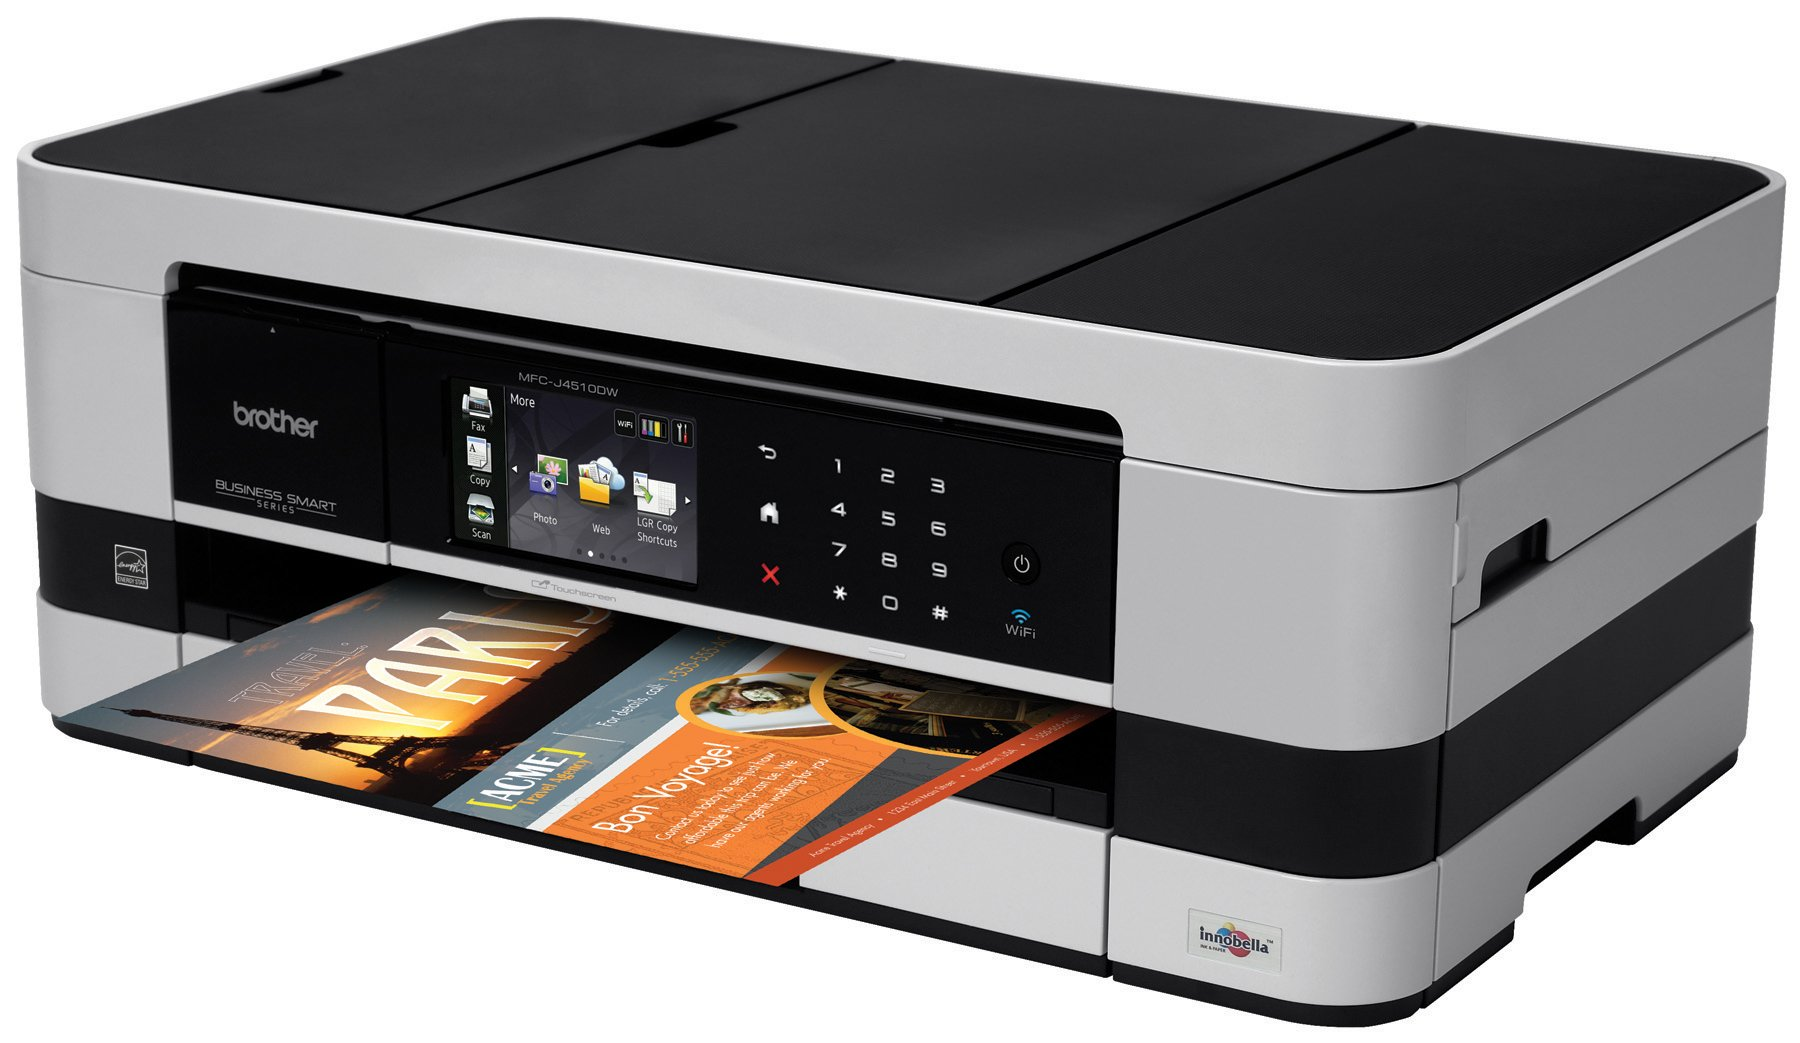 Brother Printer MFCJ4510DW Wireless Color Photo Printer with Scanner, Copier and Fax, Amazon Dash Replenishment Enabled by Brother (Image #2)